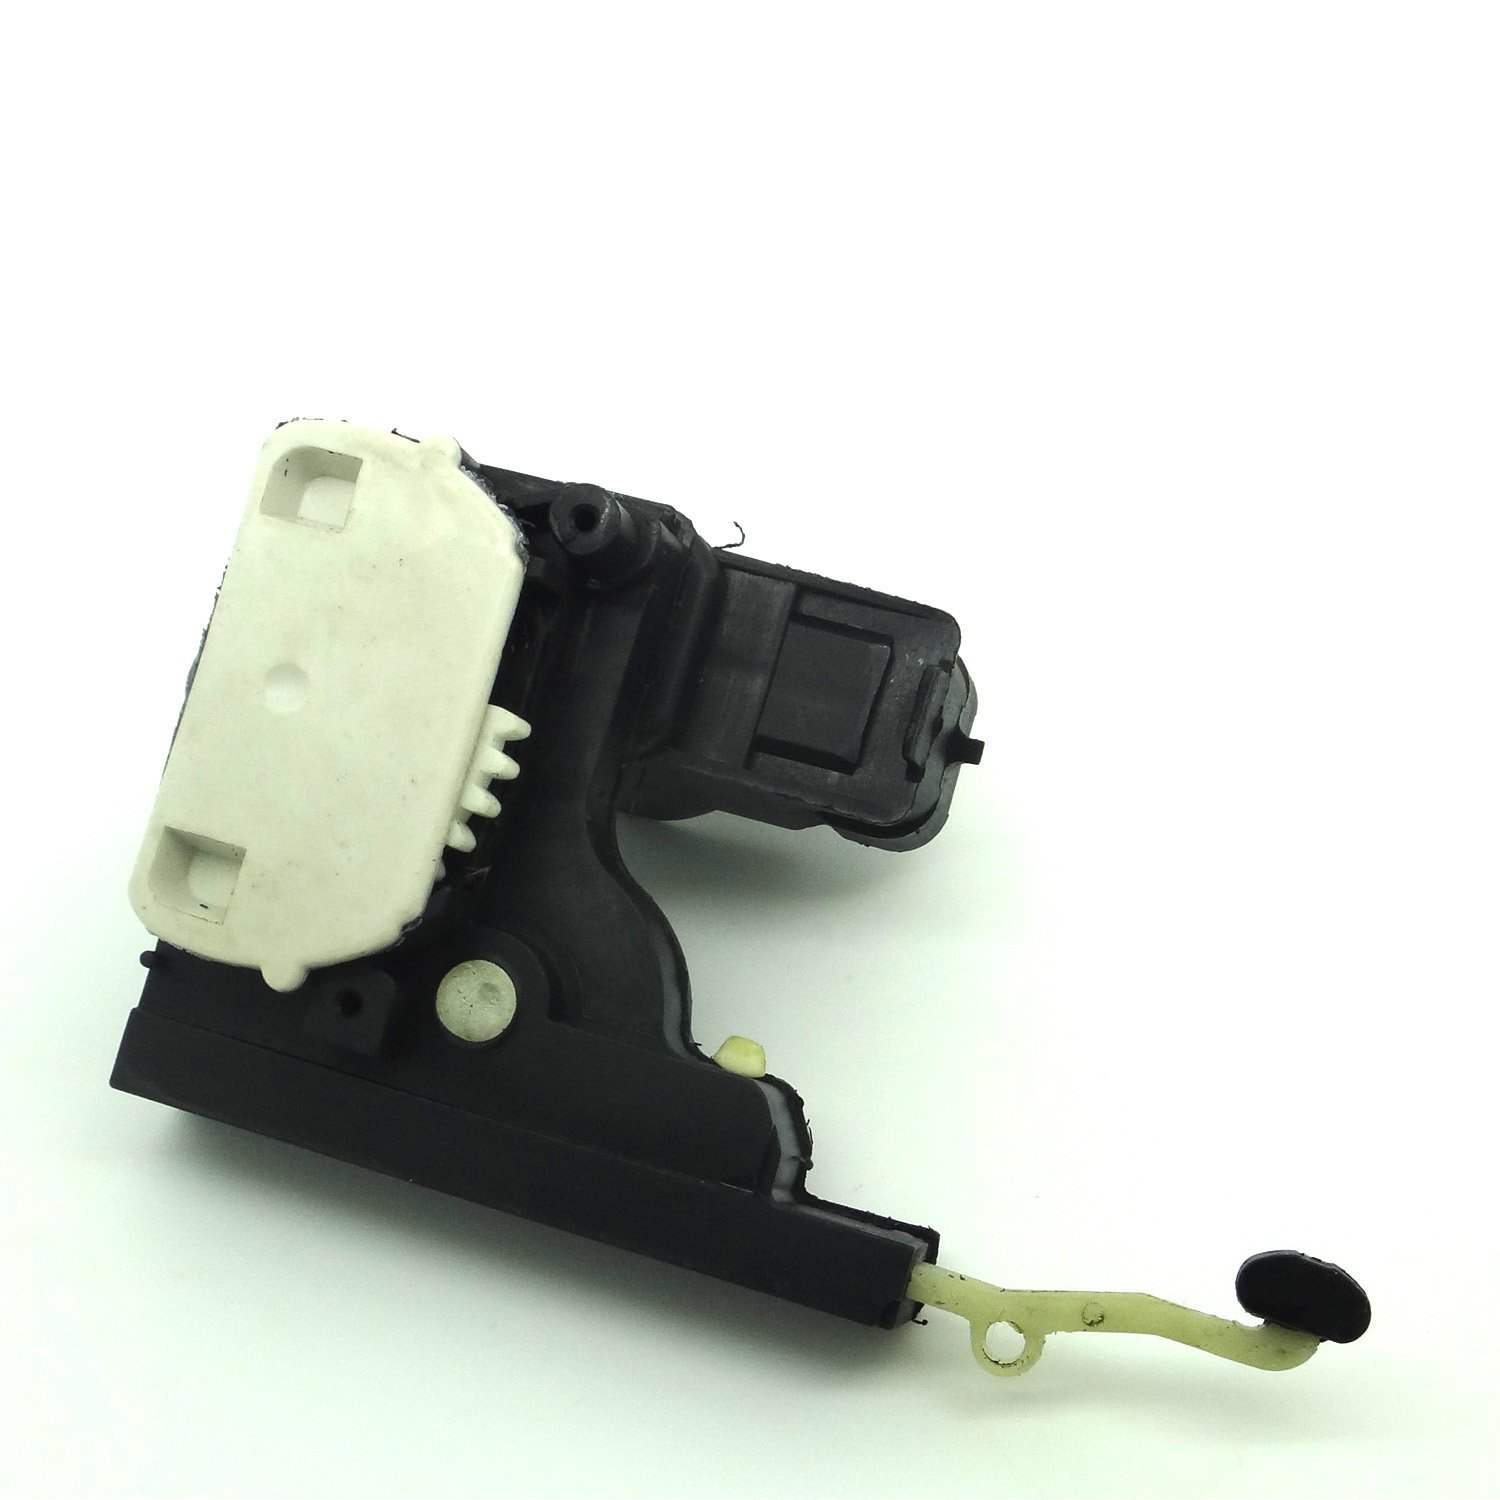 Conpus 22144363 Door Lock Actuator Motor Front Left Or Rear Left (Driver Side) New 1995-2005 Pontiac Sunfire A1403